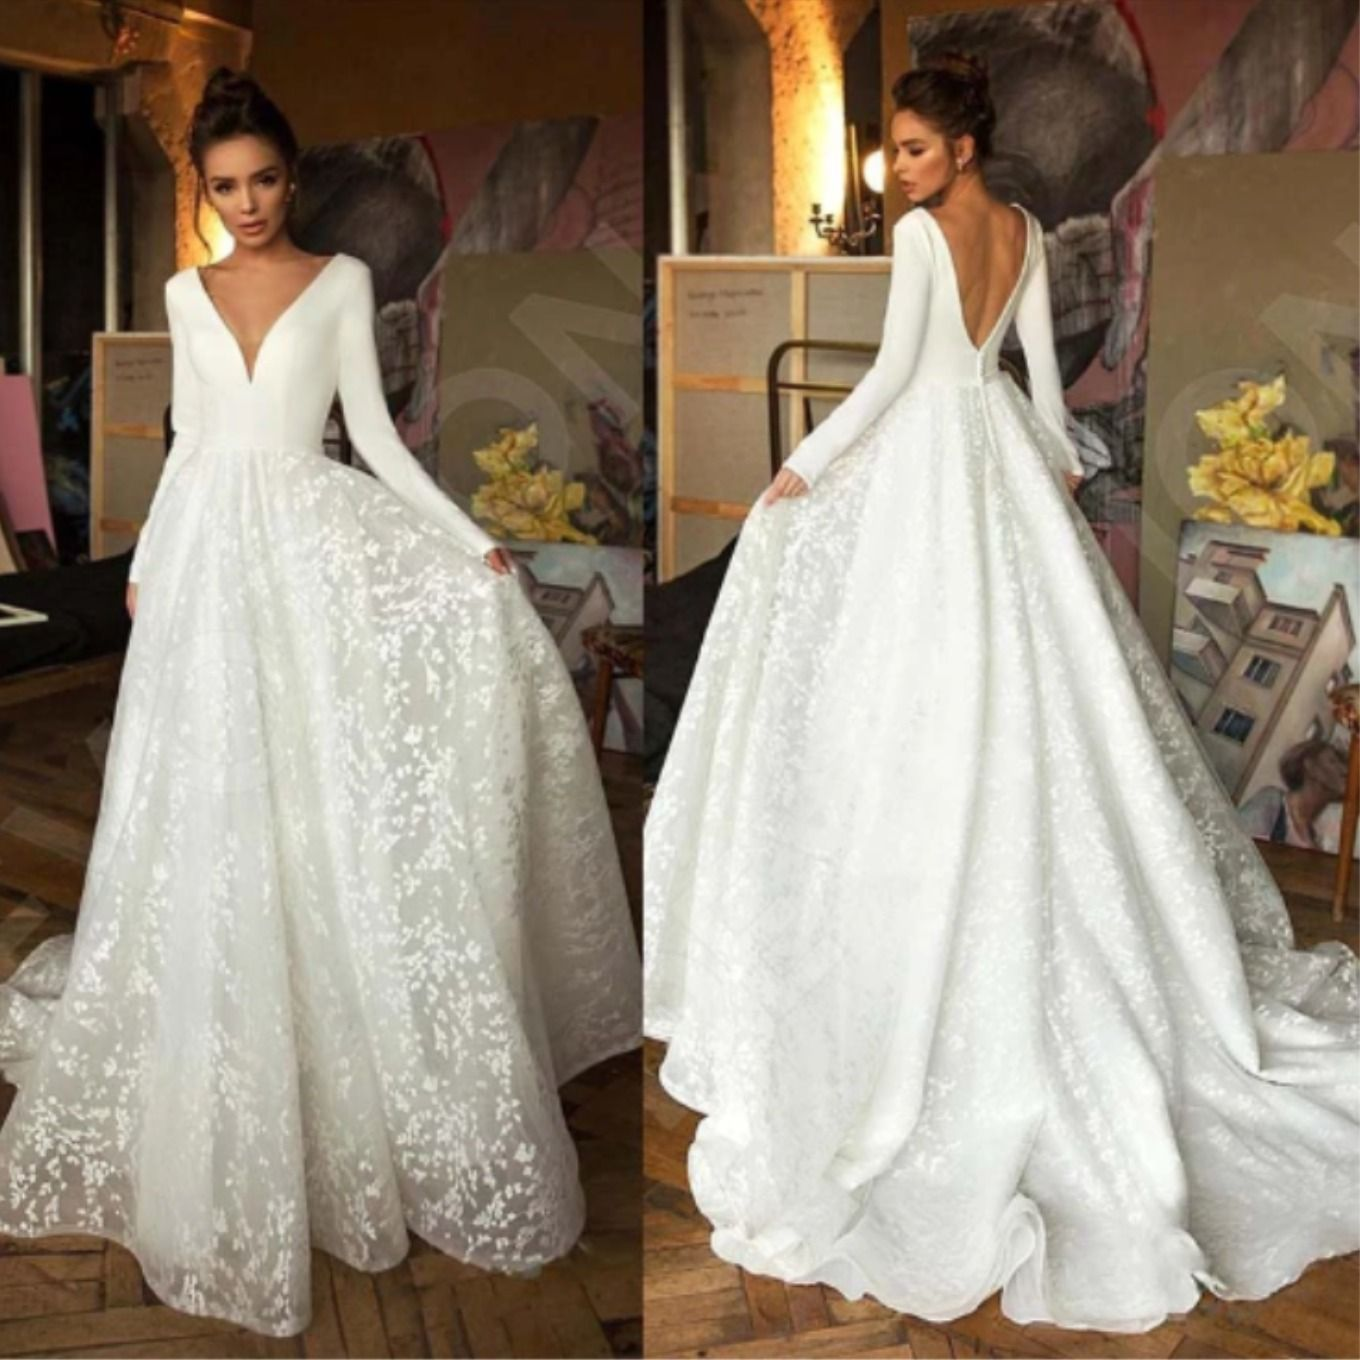 Classy Long Sleeve Deep V Neck Wedding Dress In 2020 Long Sleeve Bridal Dresses Backless Bridal Gowns Wedding Dress Trends